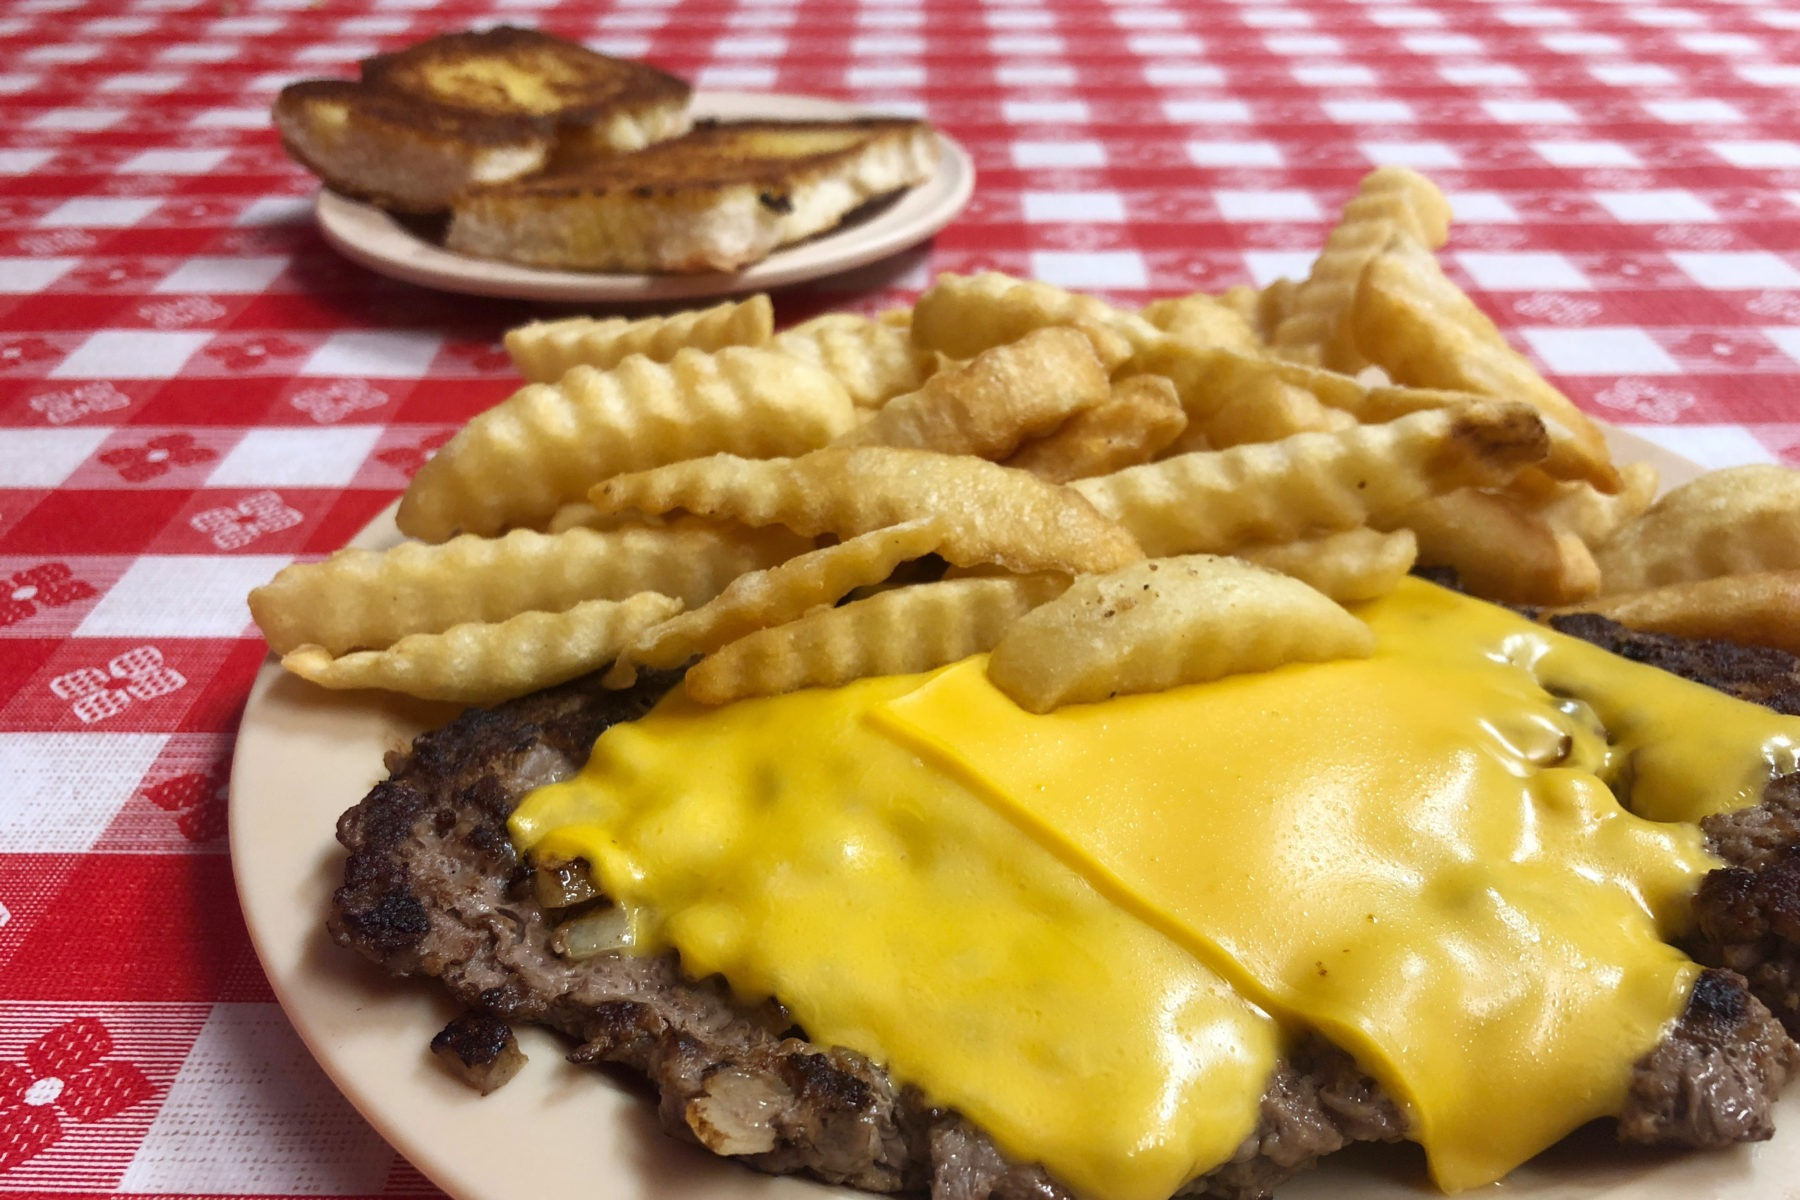 The cheesburger steak meal with a large grilled hamburger patty topped with melted cheese and surrounded with crinkle cut french fries from Johnny's Big Burger in Clarksville, Tennessee